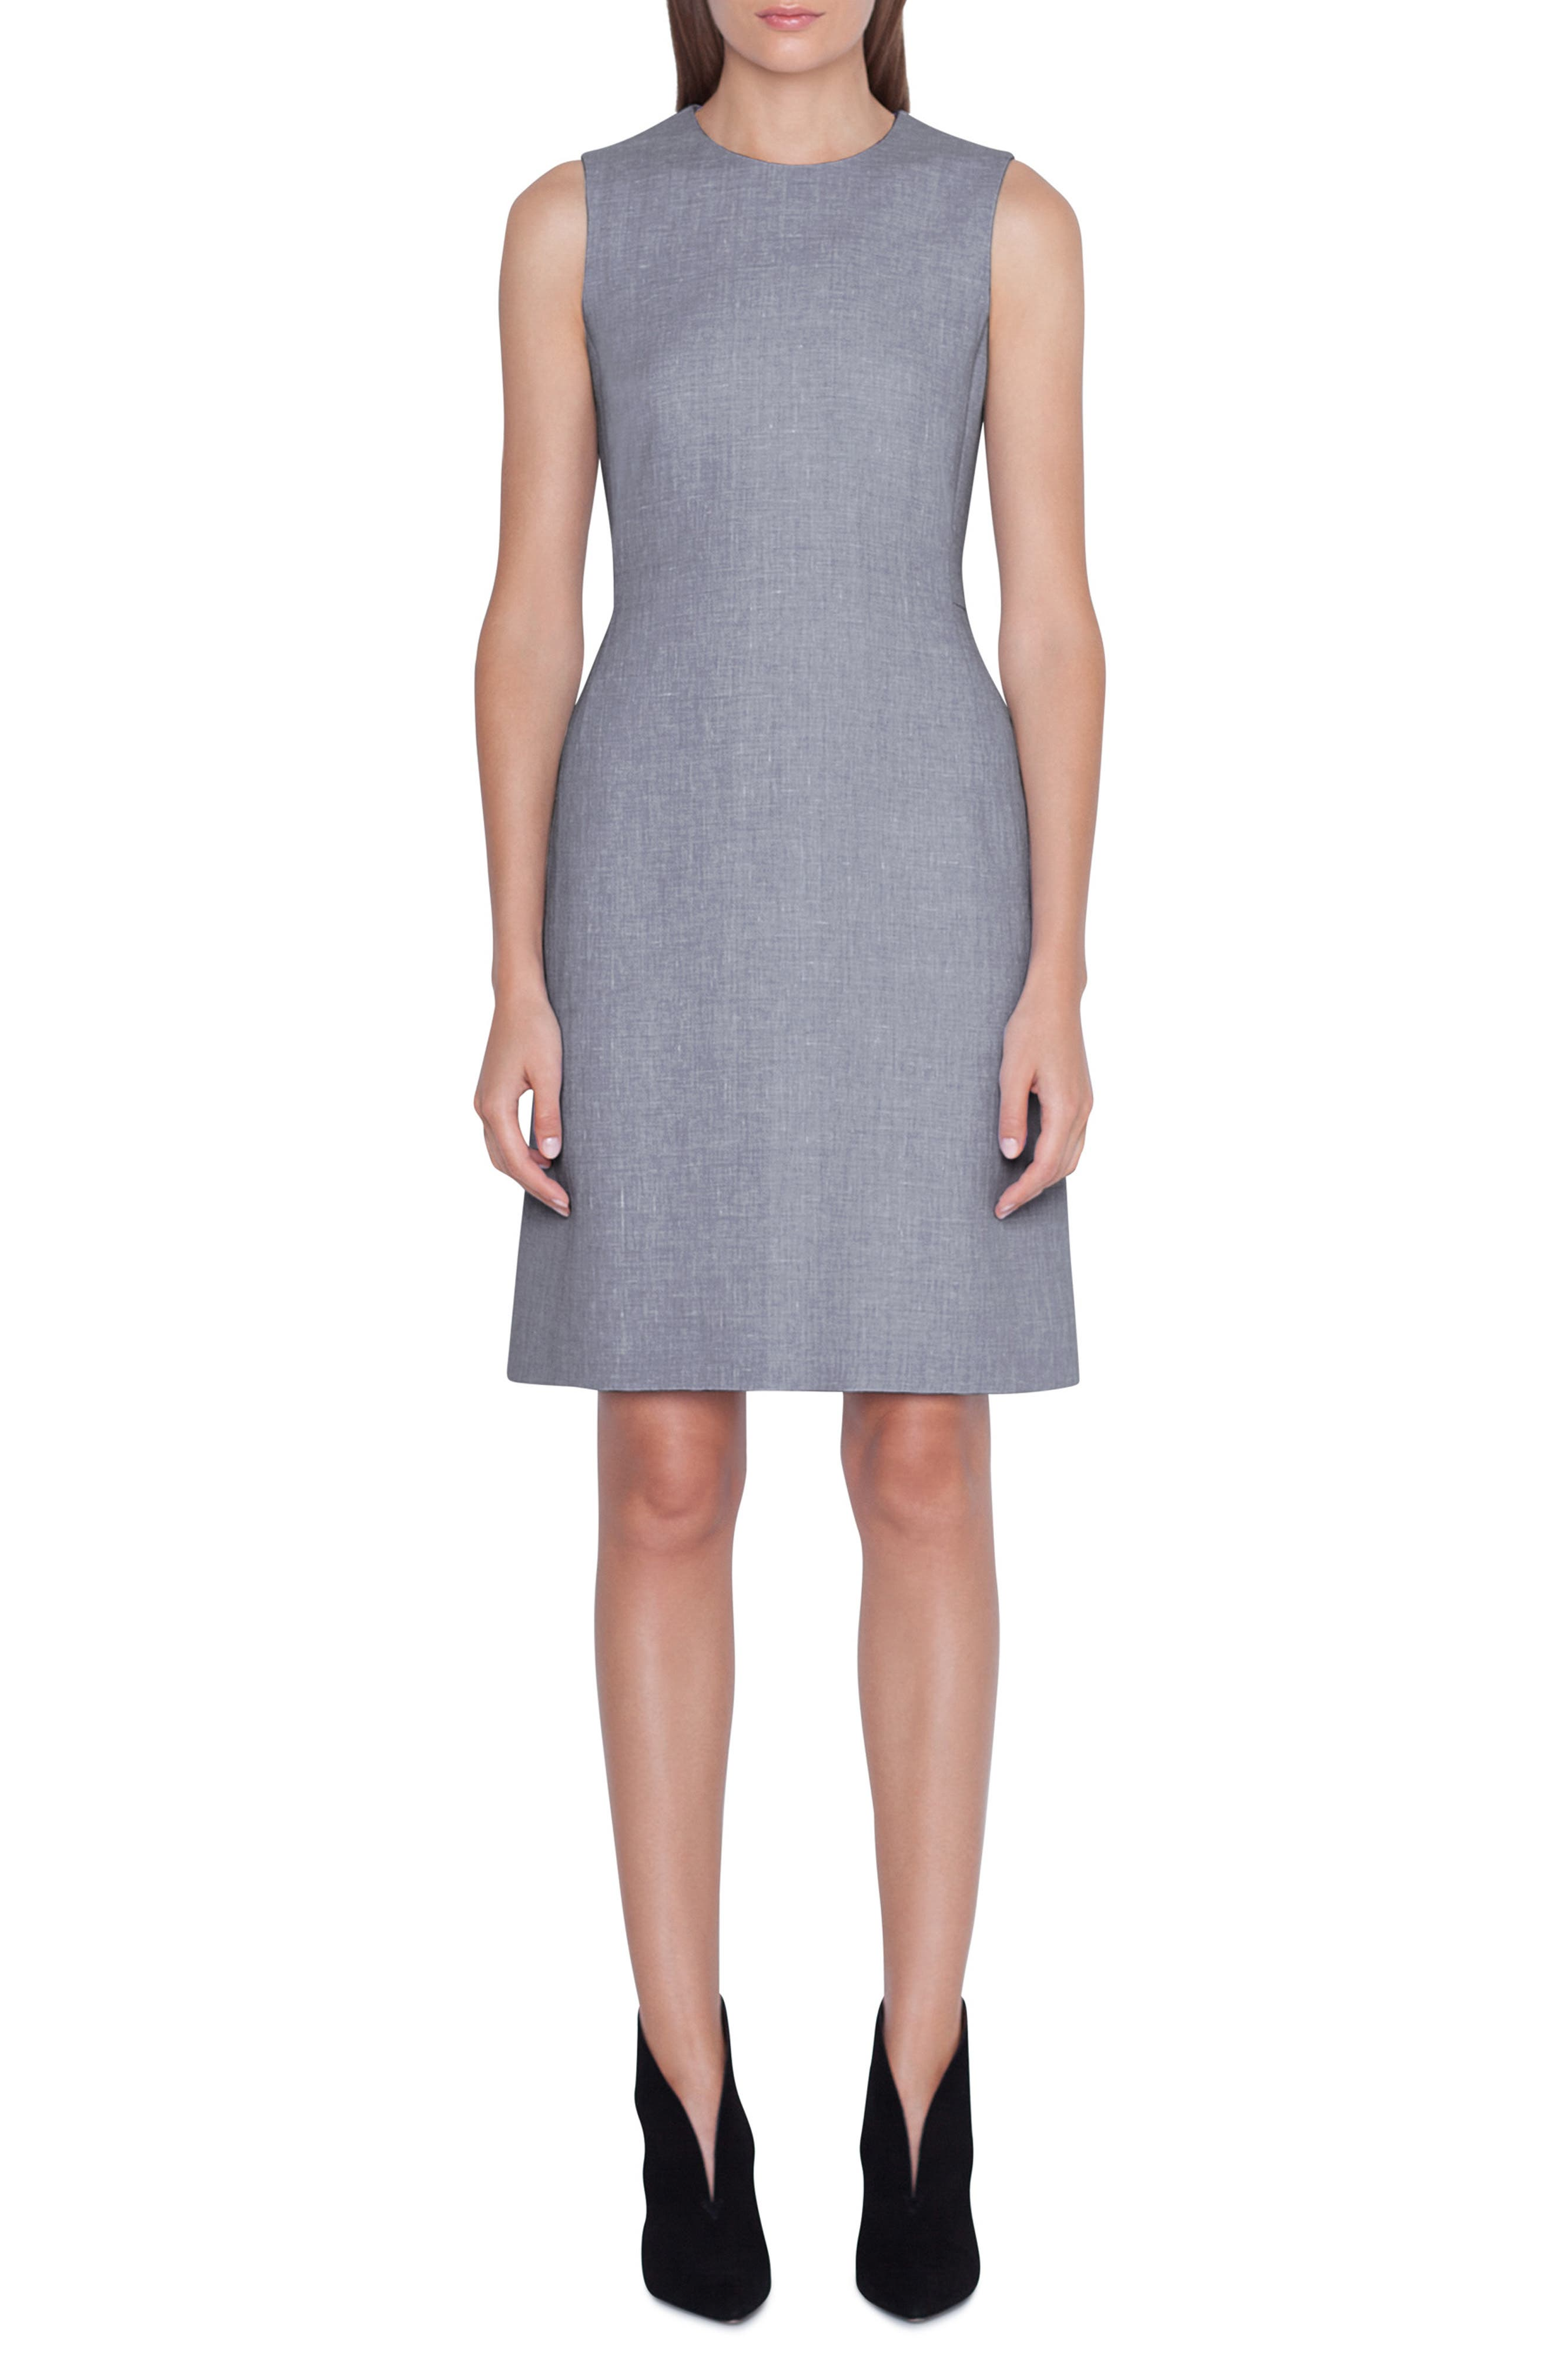 AKRIS Linen & Wool Seamed Sheath Dress, Main, color, TITAN